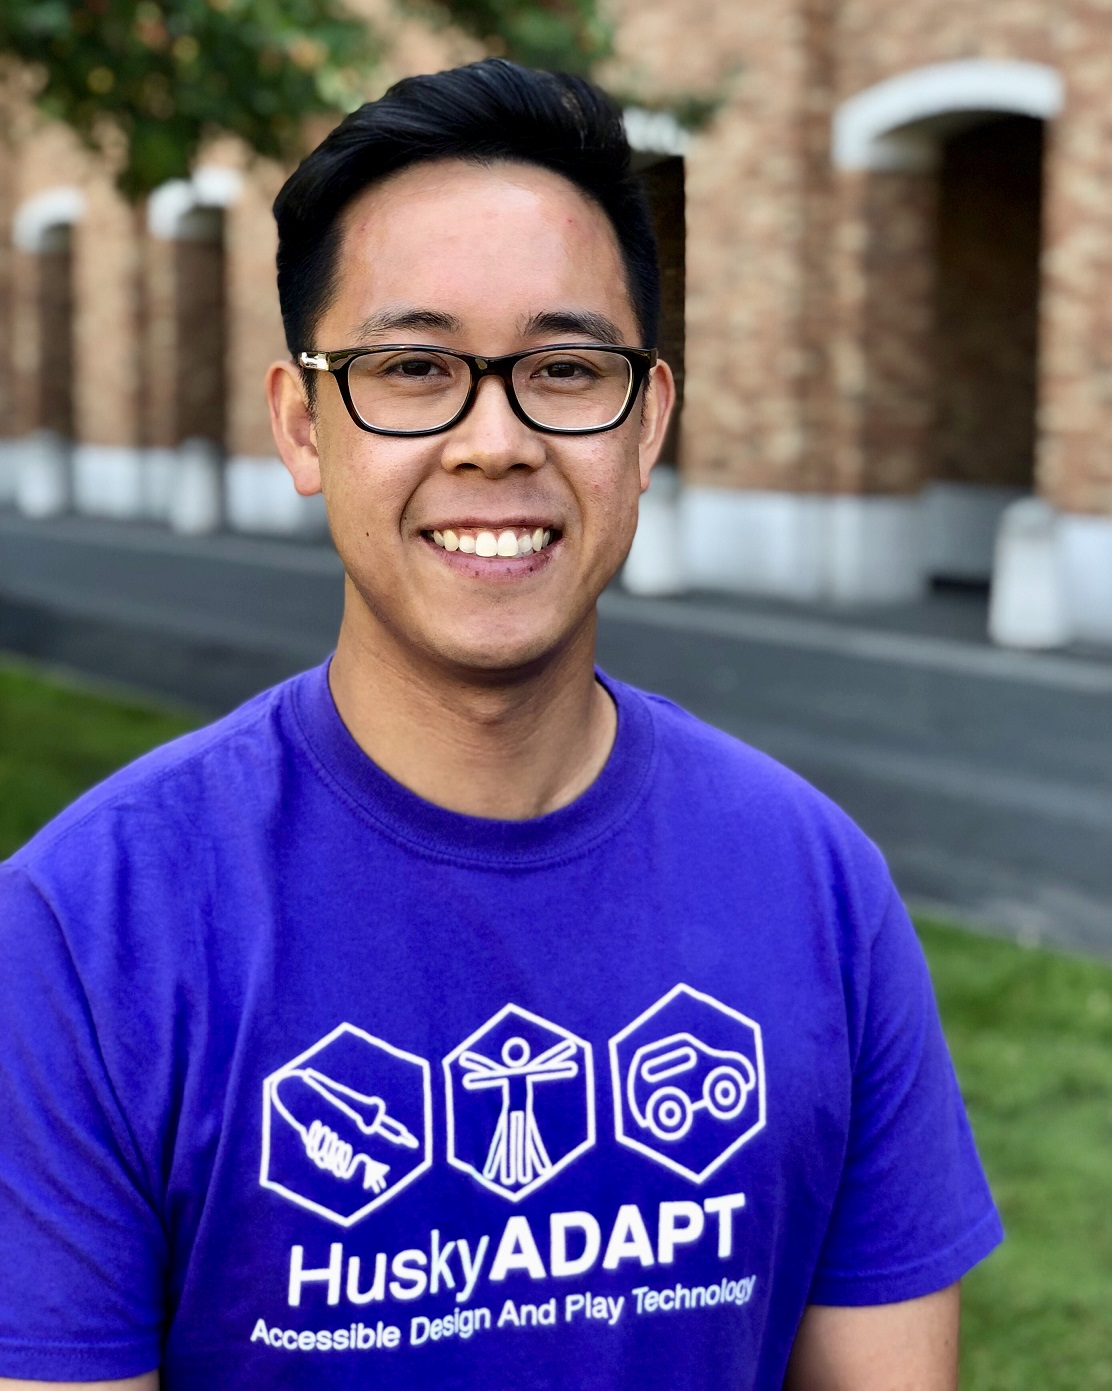 Brandon smiles at camera on the University of Washington campus in a bright purple HuskyADAPT t-shirt.